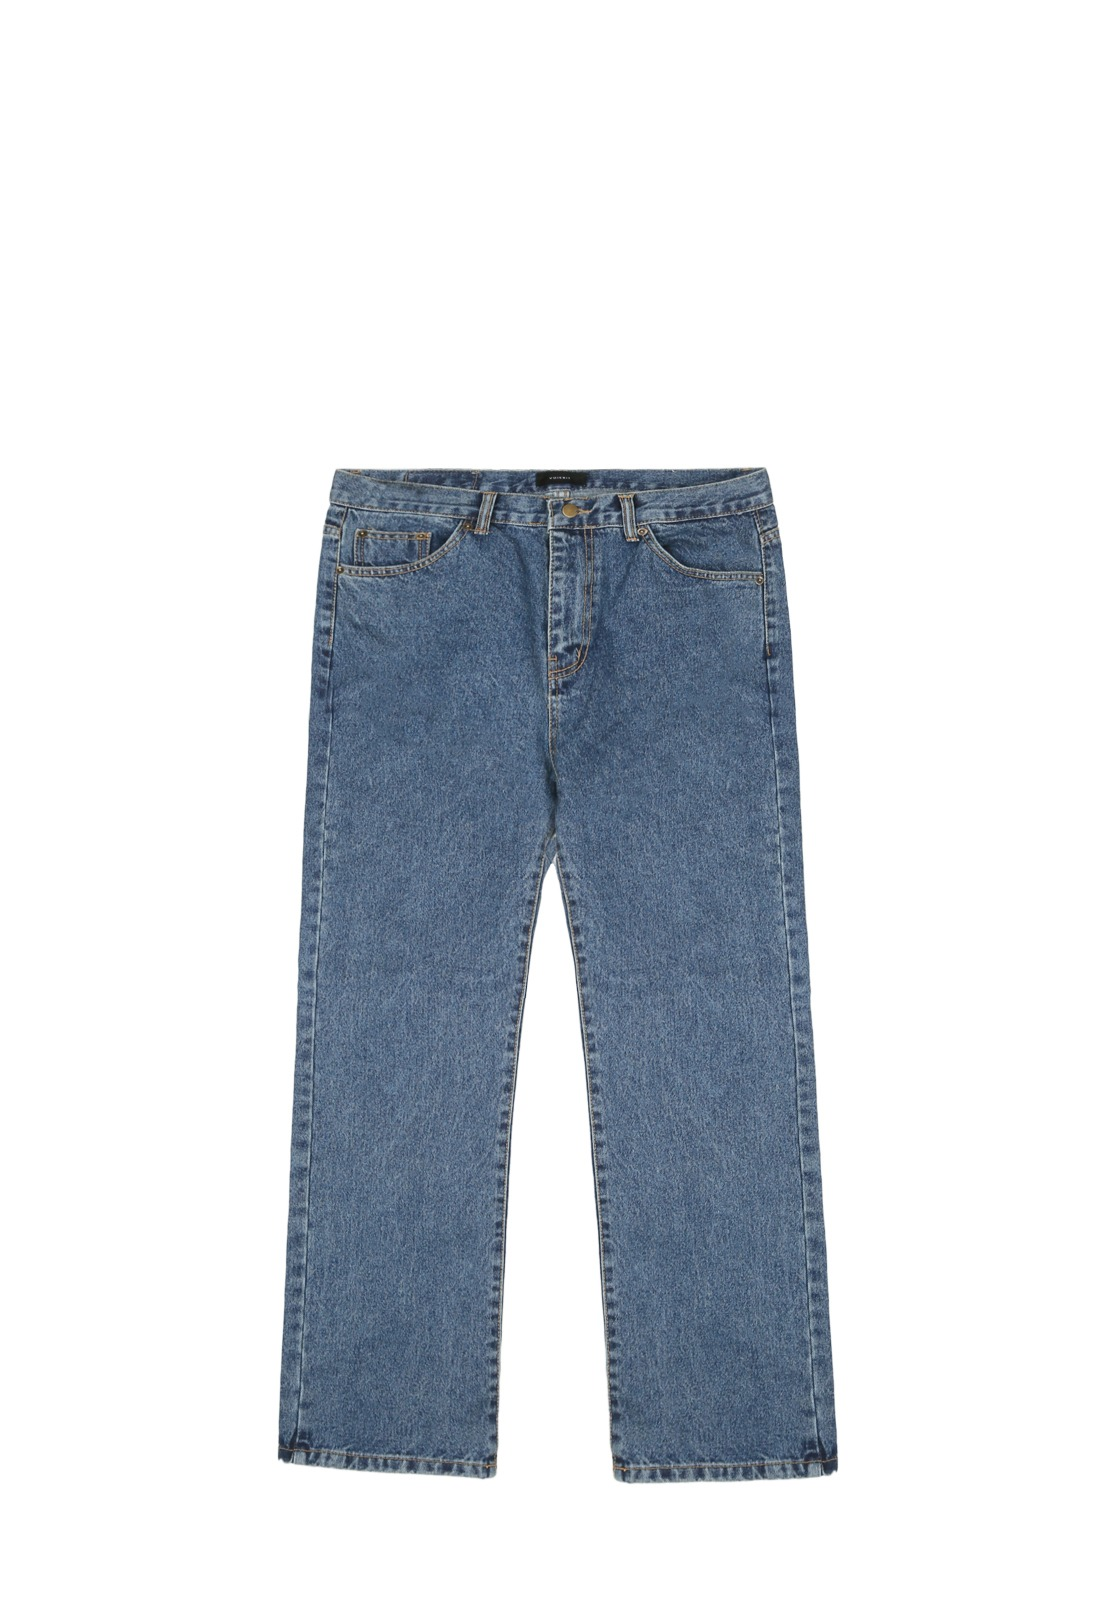 V232 NONE SPAN WIDE DENIM PANTS  BLUE